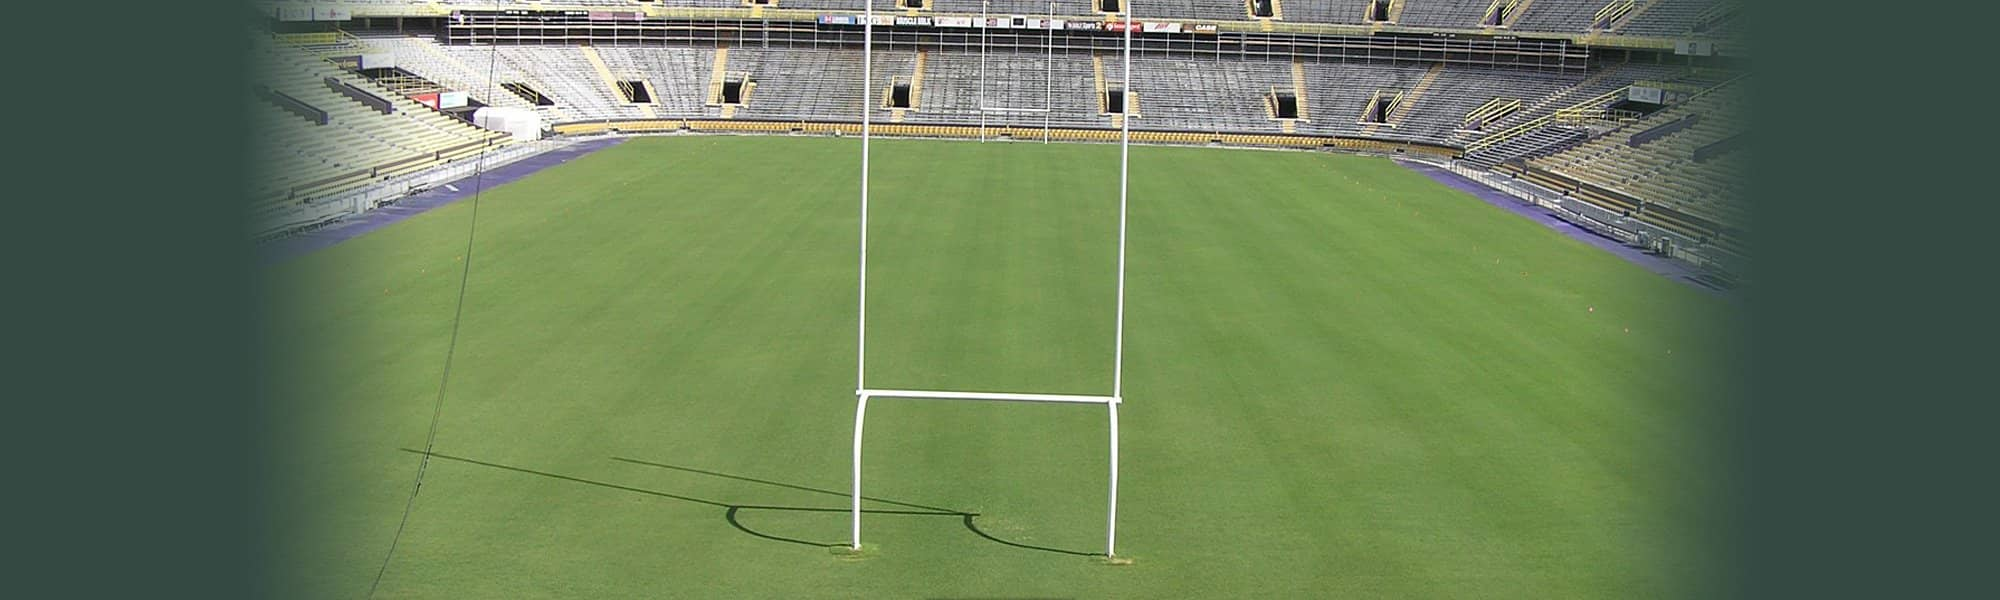 Sports Field Maintenance & Turf Management